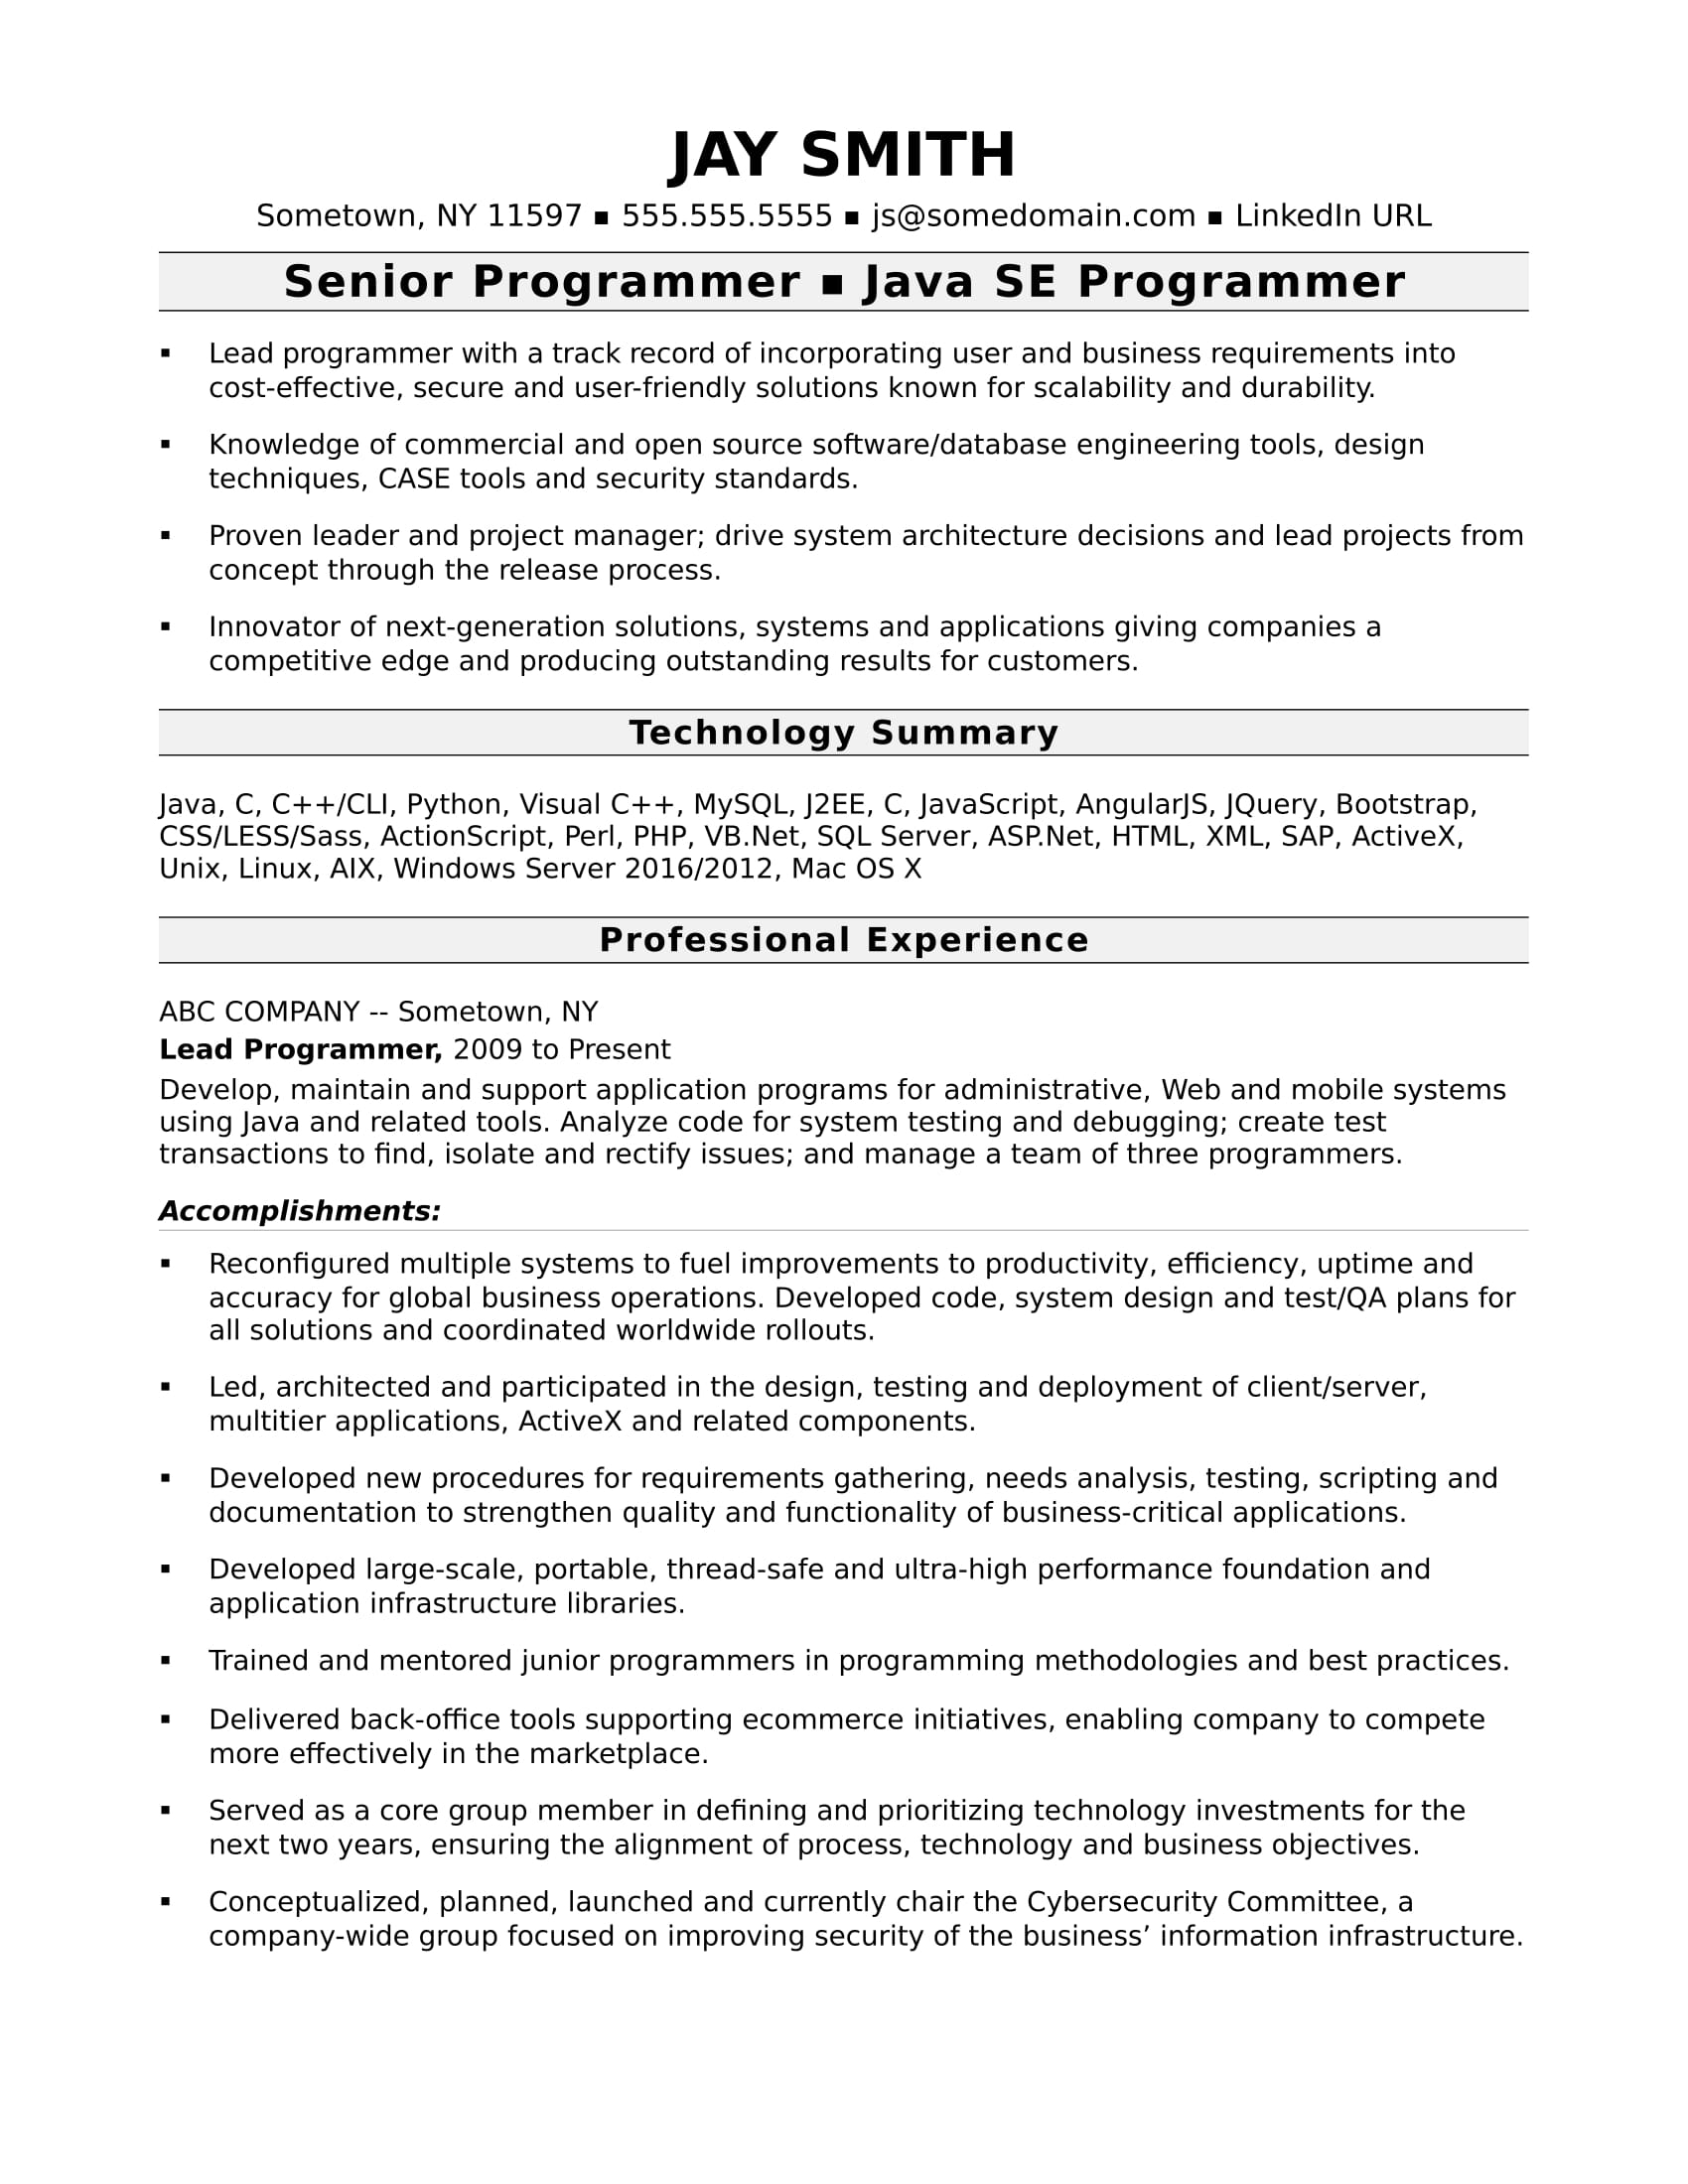 Computer Programming Resume Sample Resume For An Experienced Computer Programmer  Monster